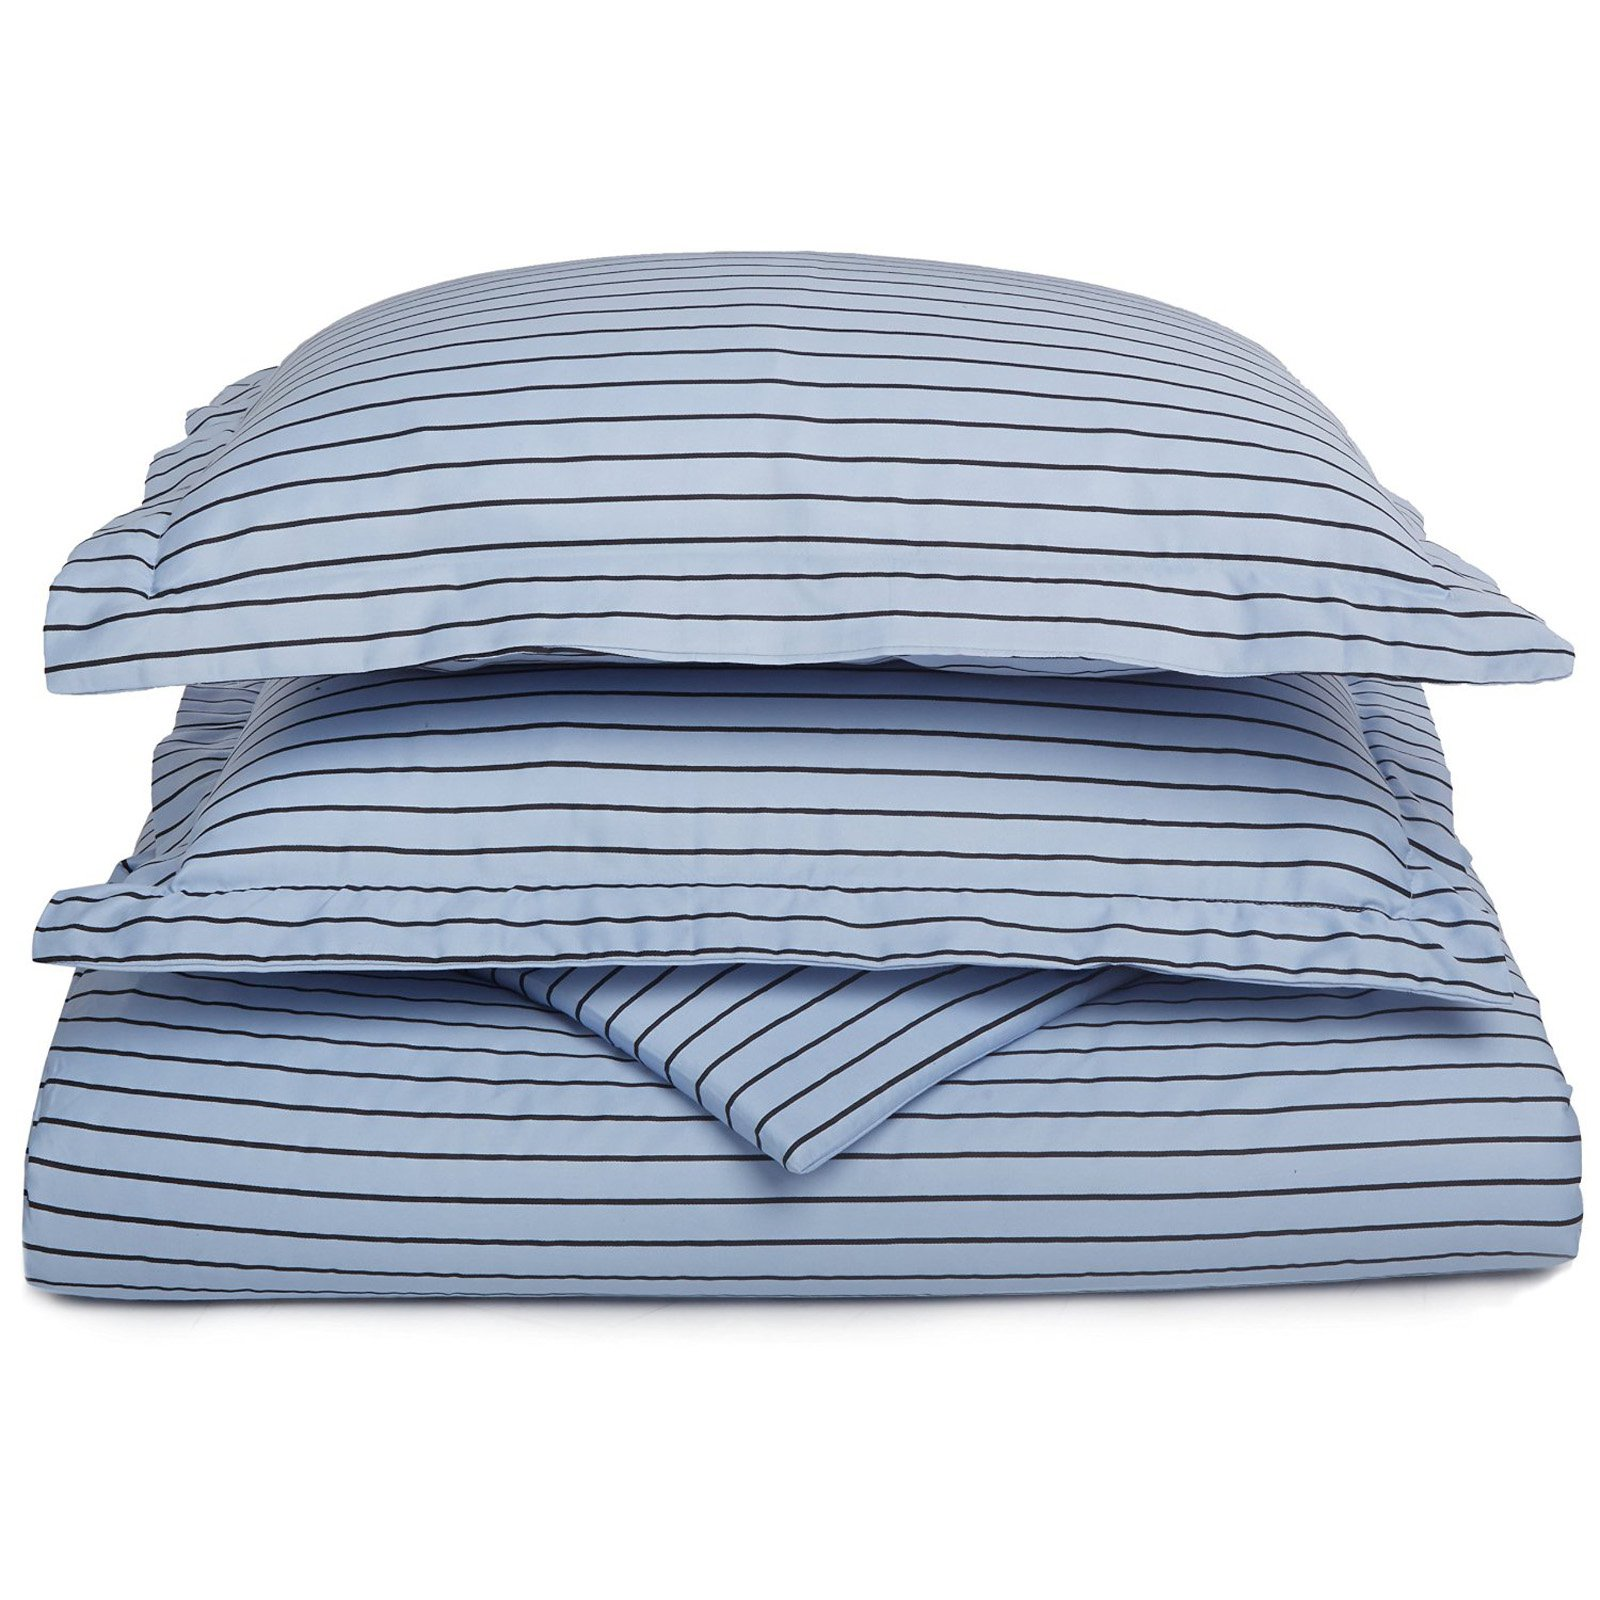 Superior 600 Thread Count Cotton Blend Bahama Stripe Duvet Cover Set